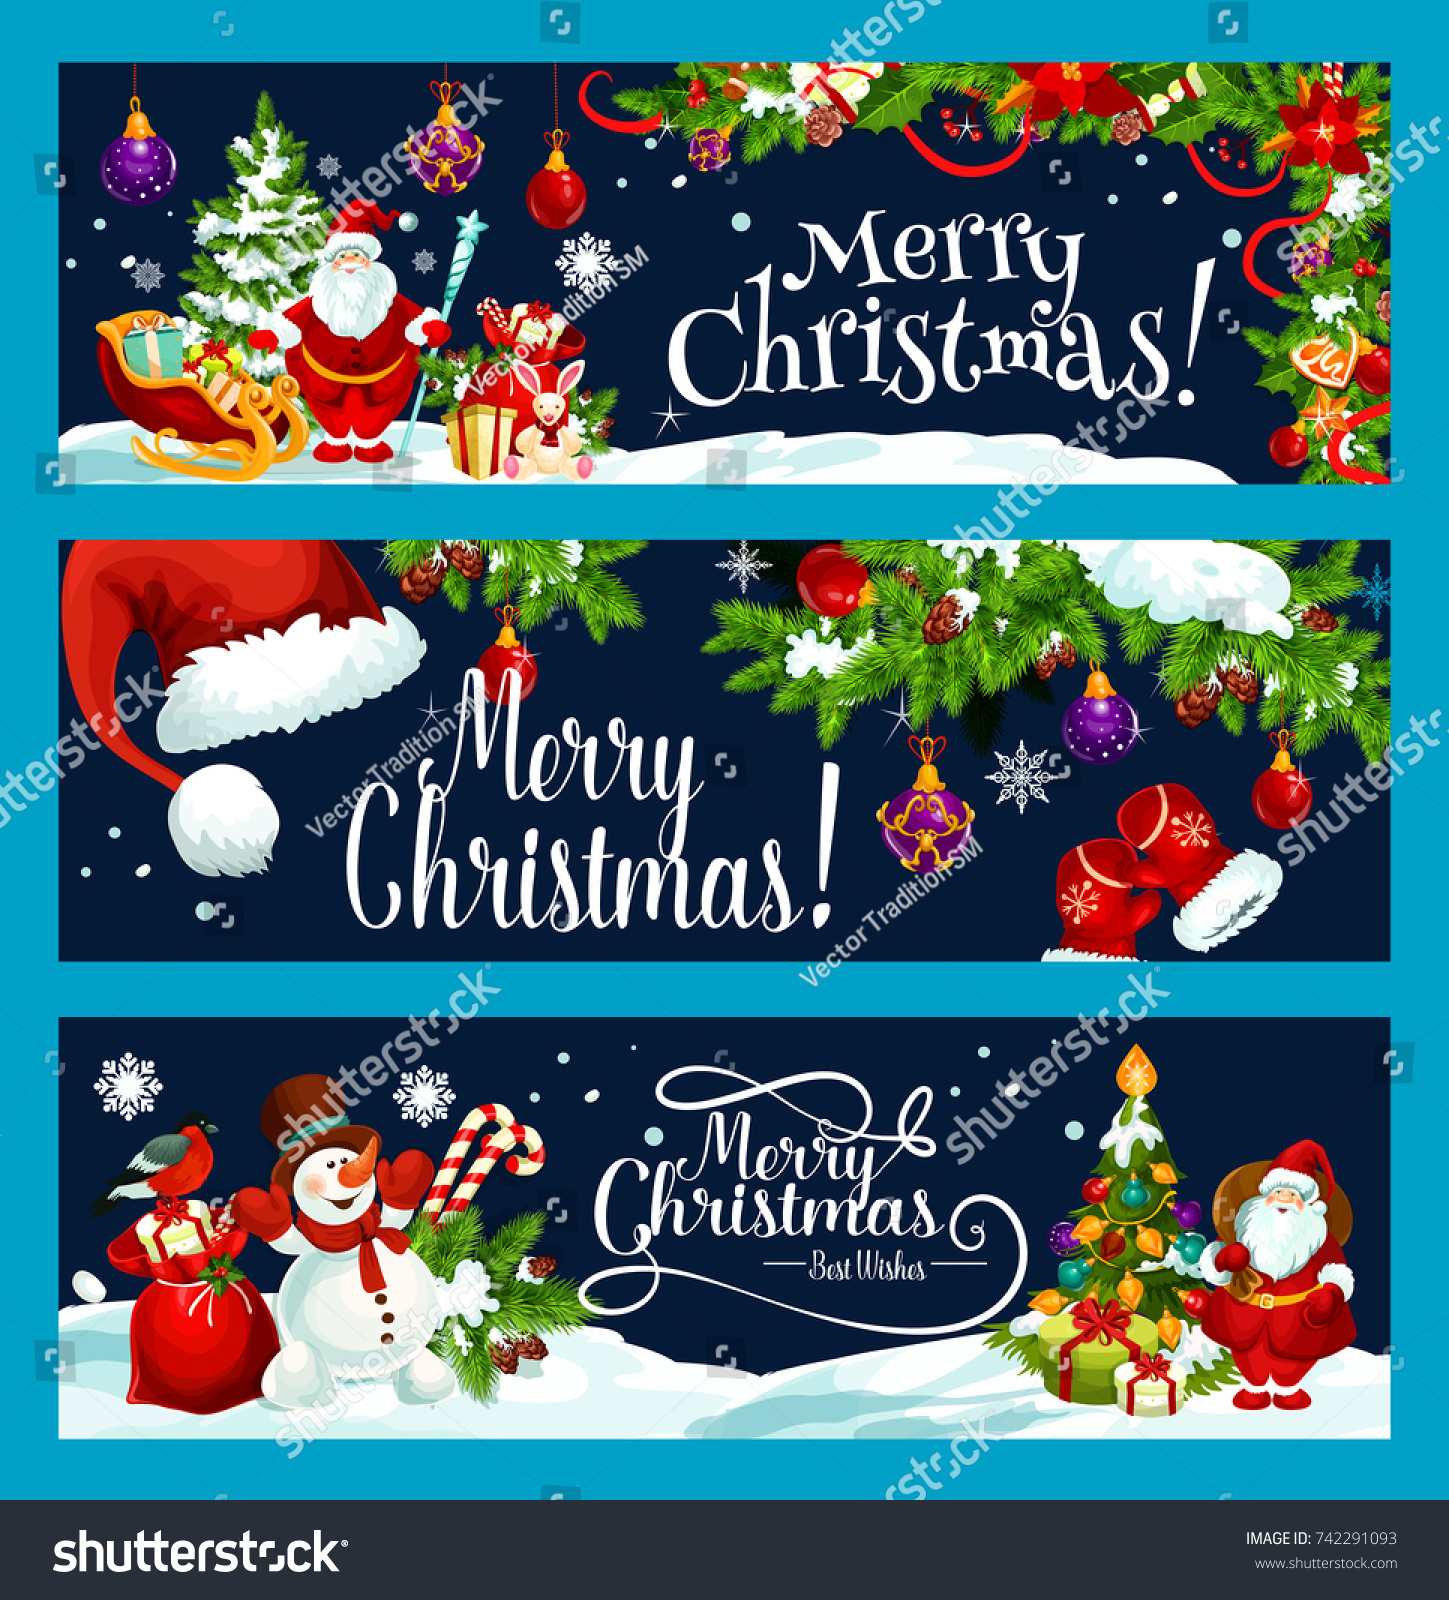 merry christmas and best wish greeting banners design template vector santa gift bag at christmas - Best Wishes For Christmas